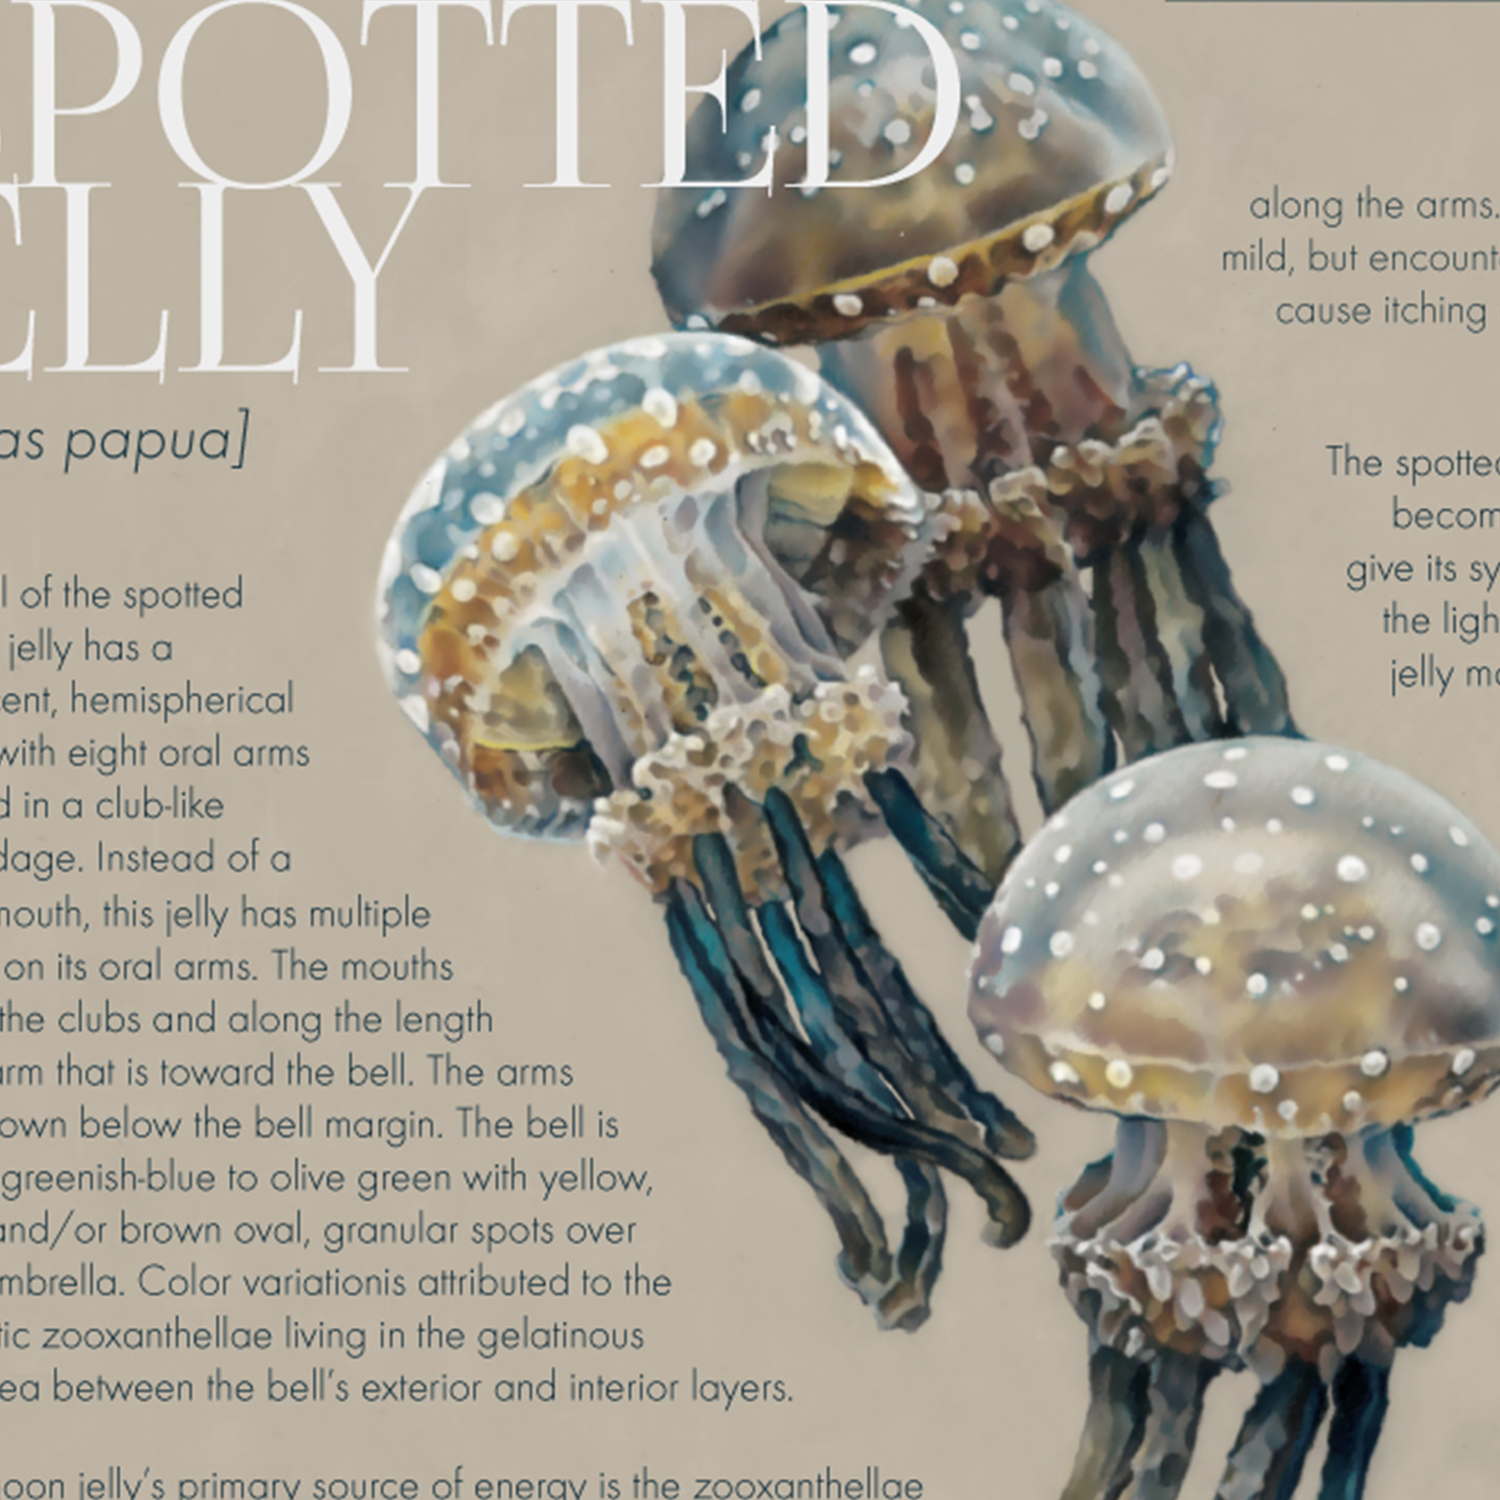 the_spotted_jelly